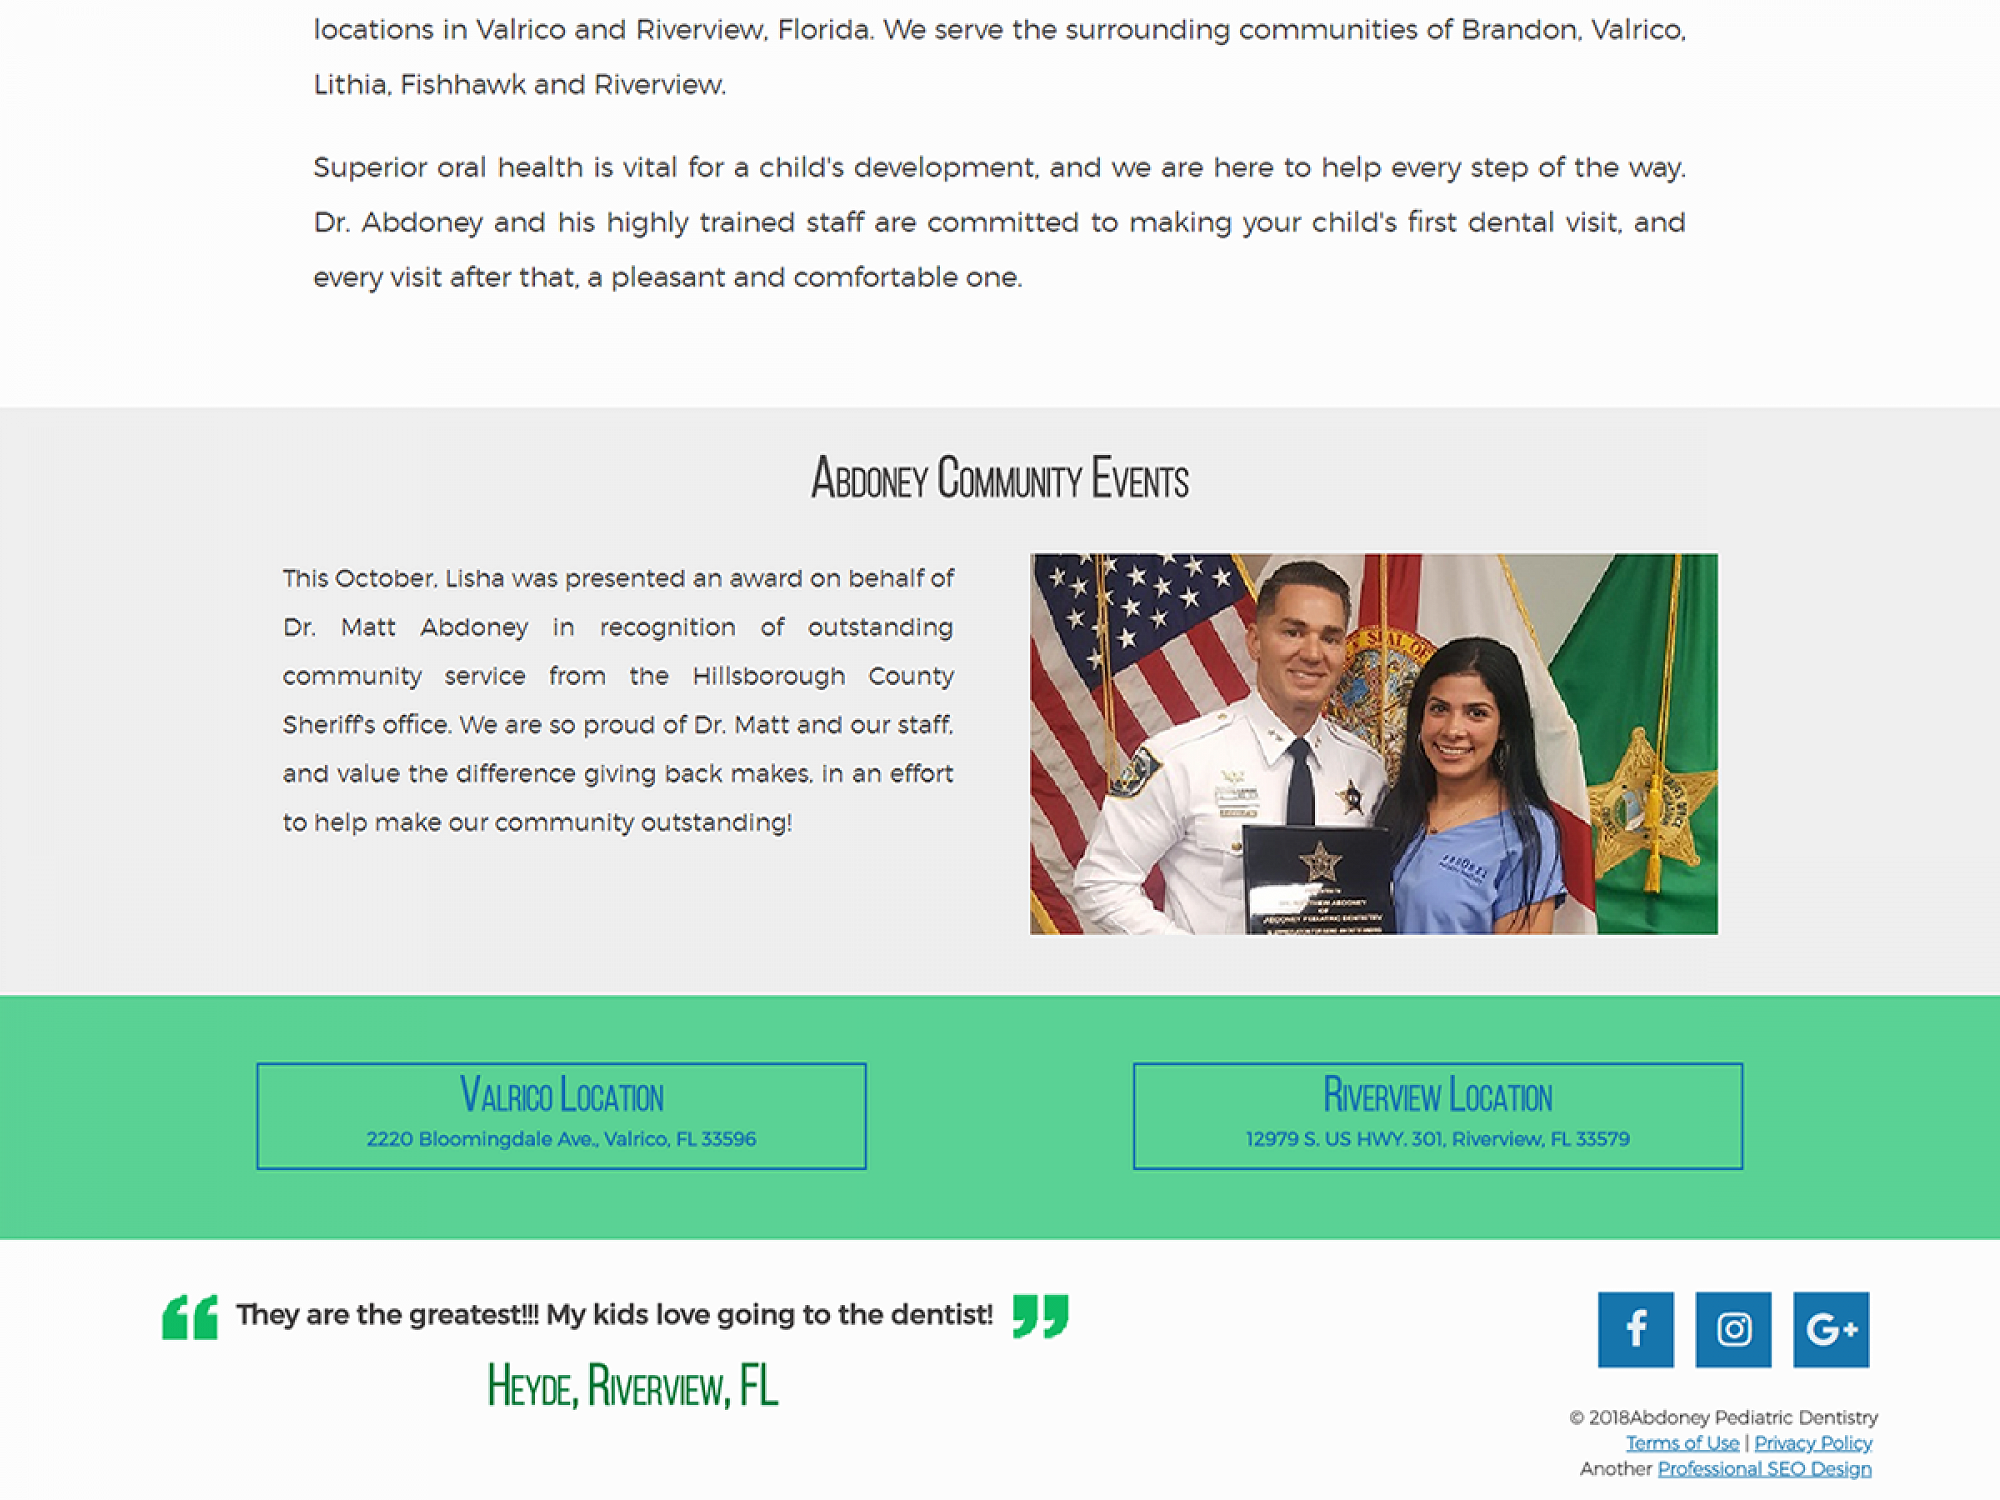 Abdoney Pediatric Dentistry Footer Website Design